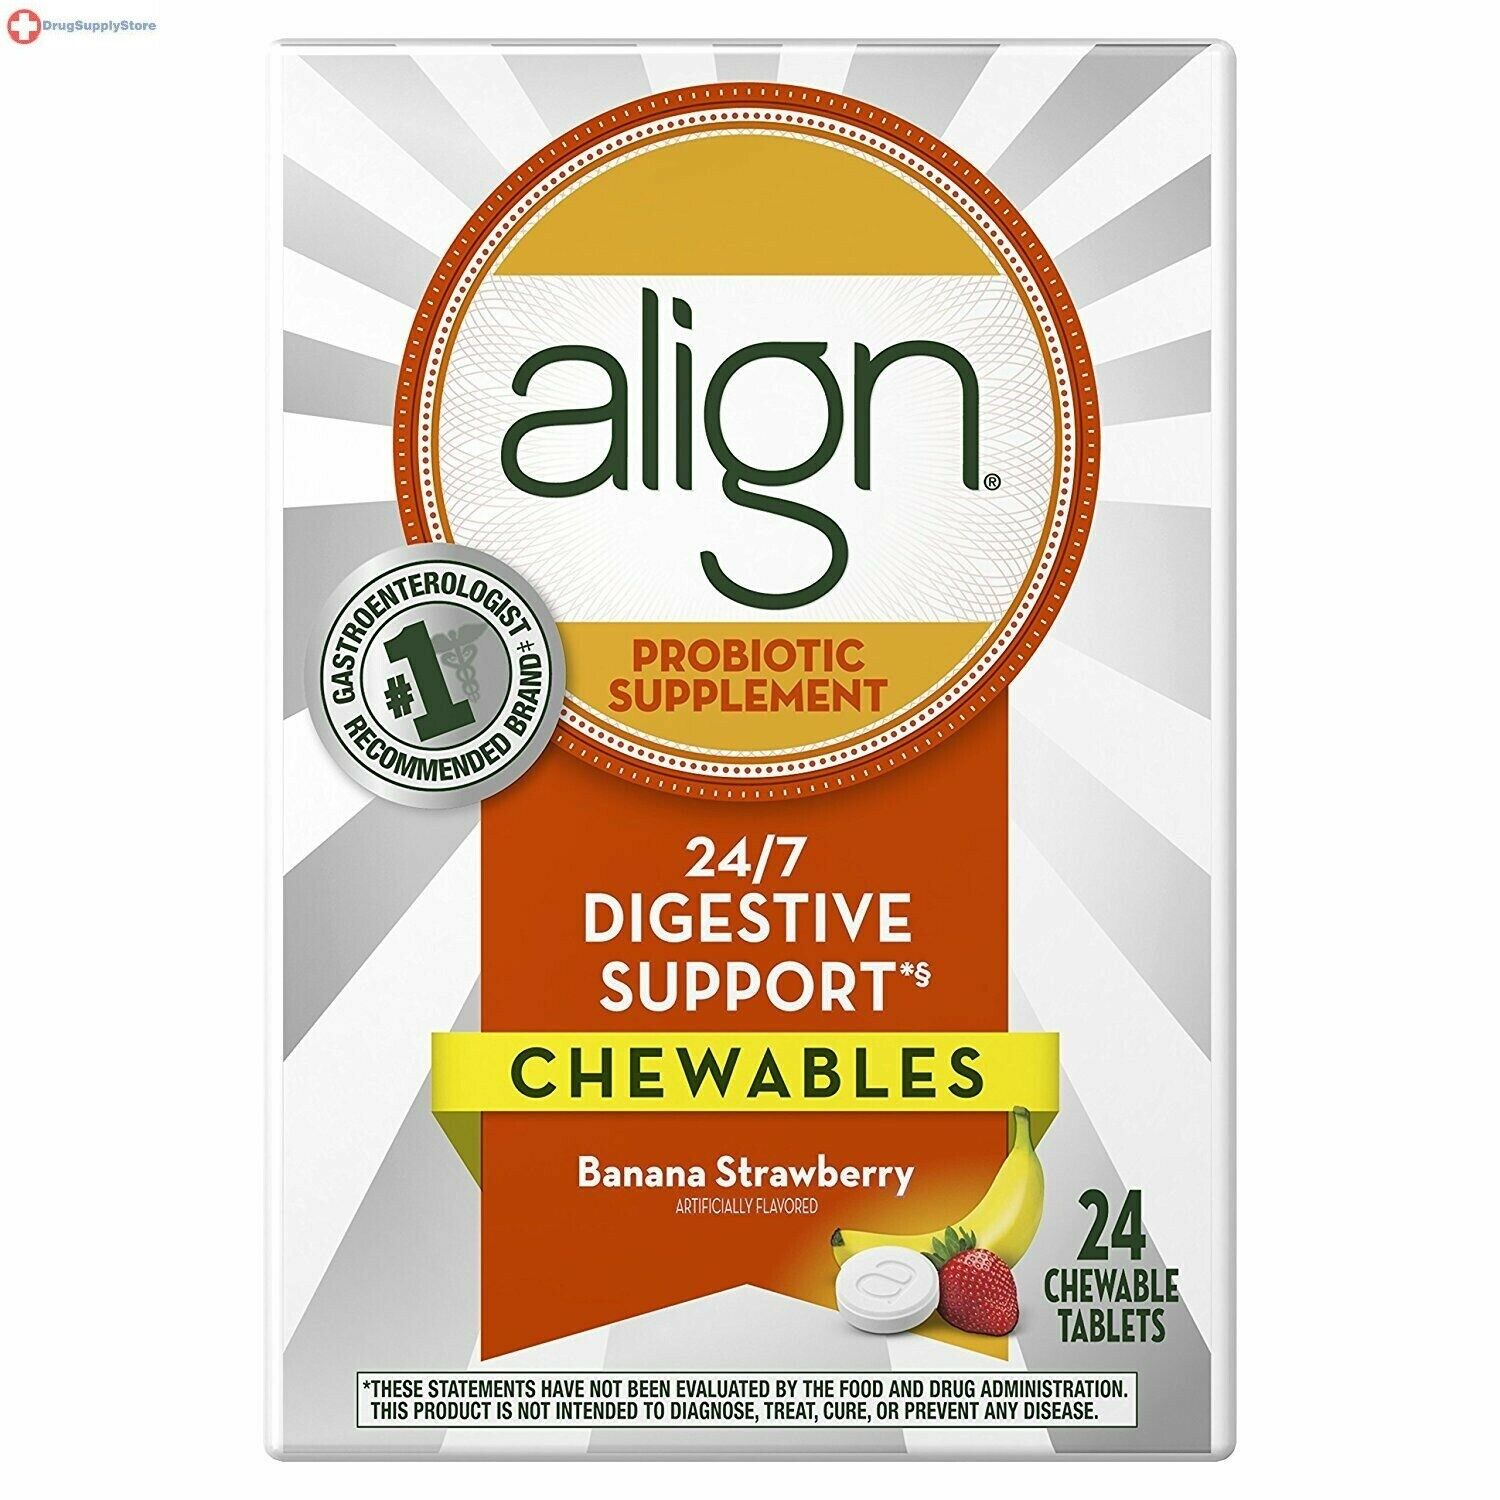 Align Probiotic Supplement Banana Strawberry Flavored Chewable